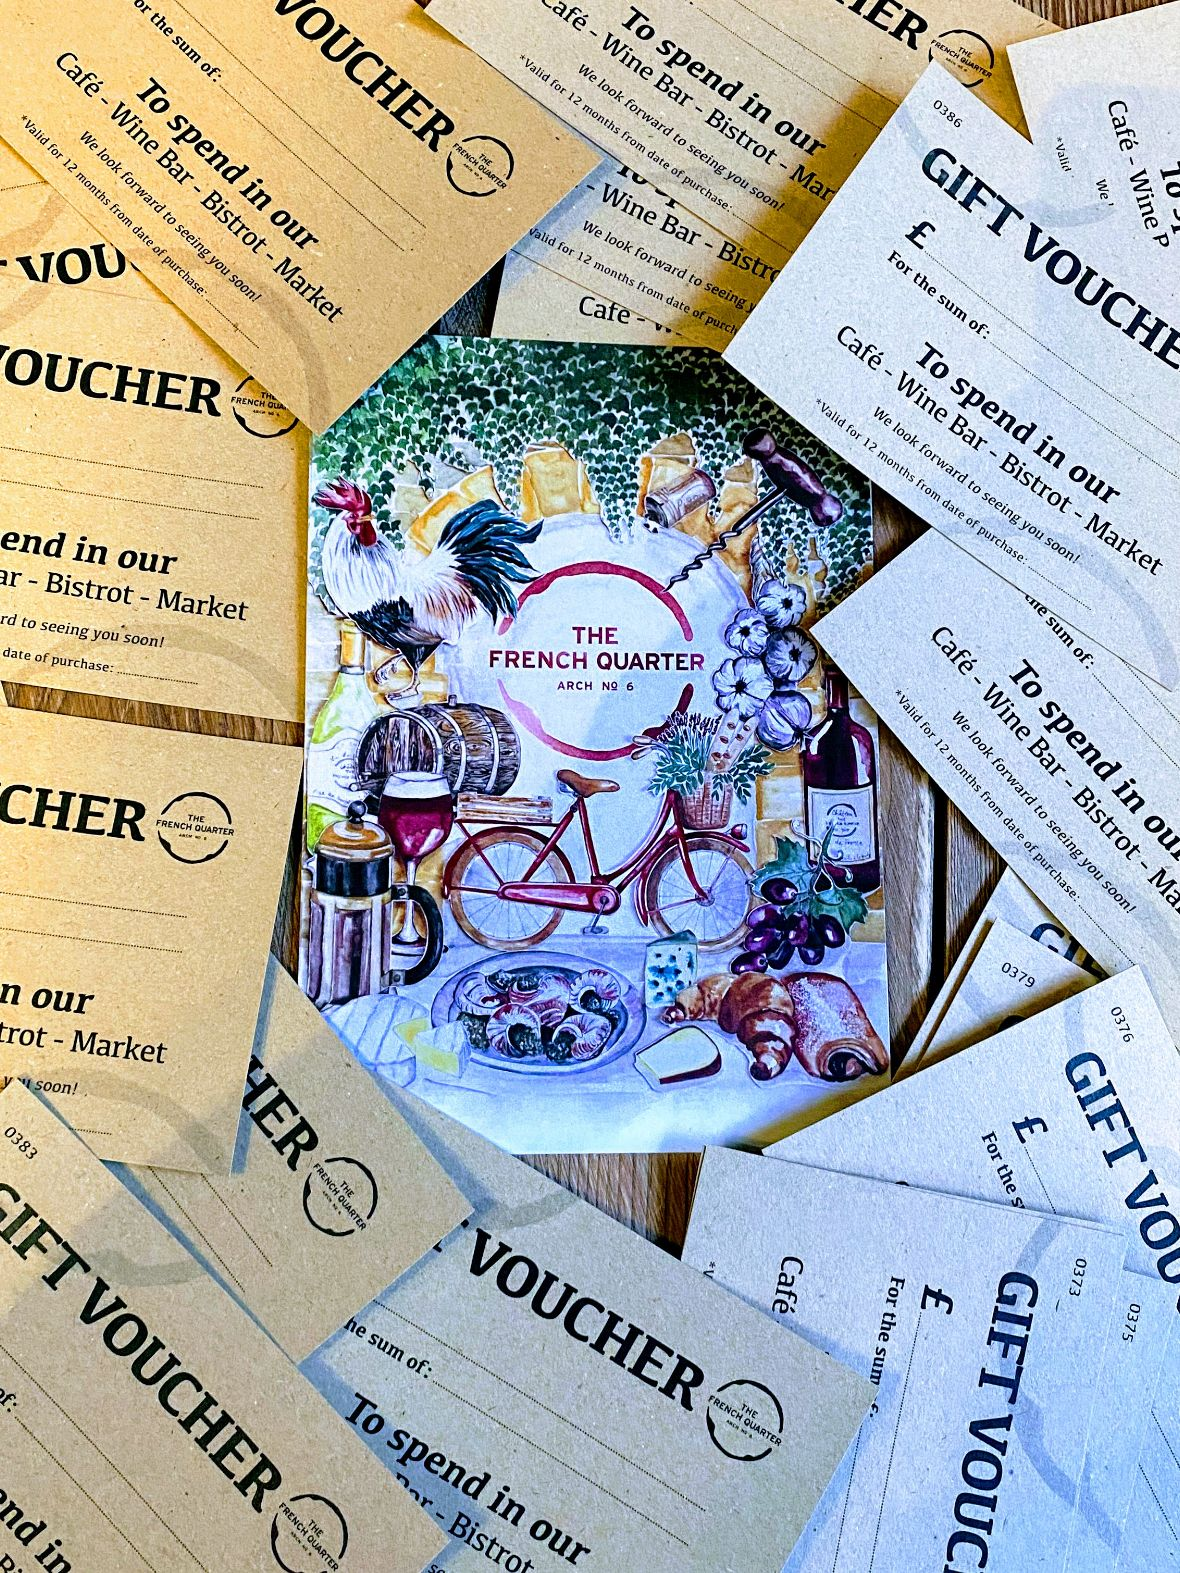 Collection of The French Quarter gift vouchers